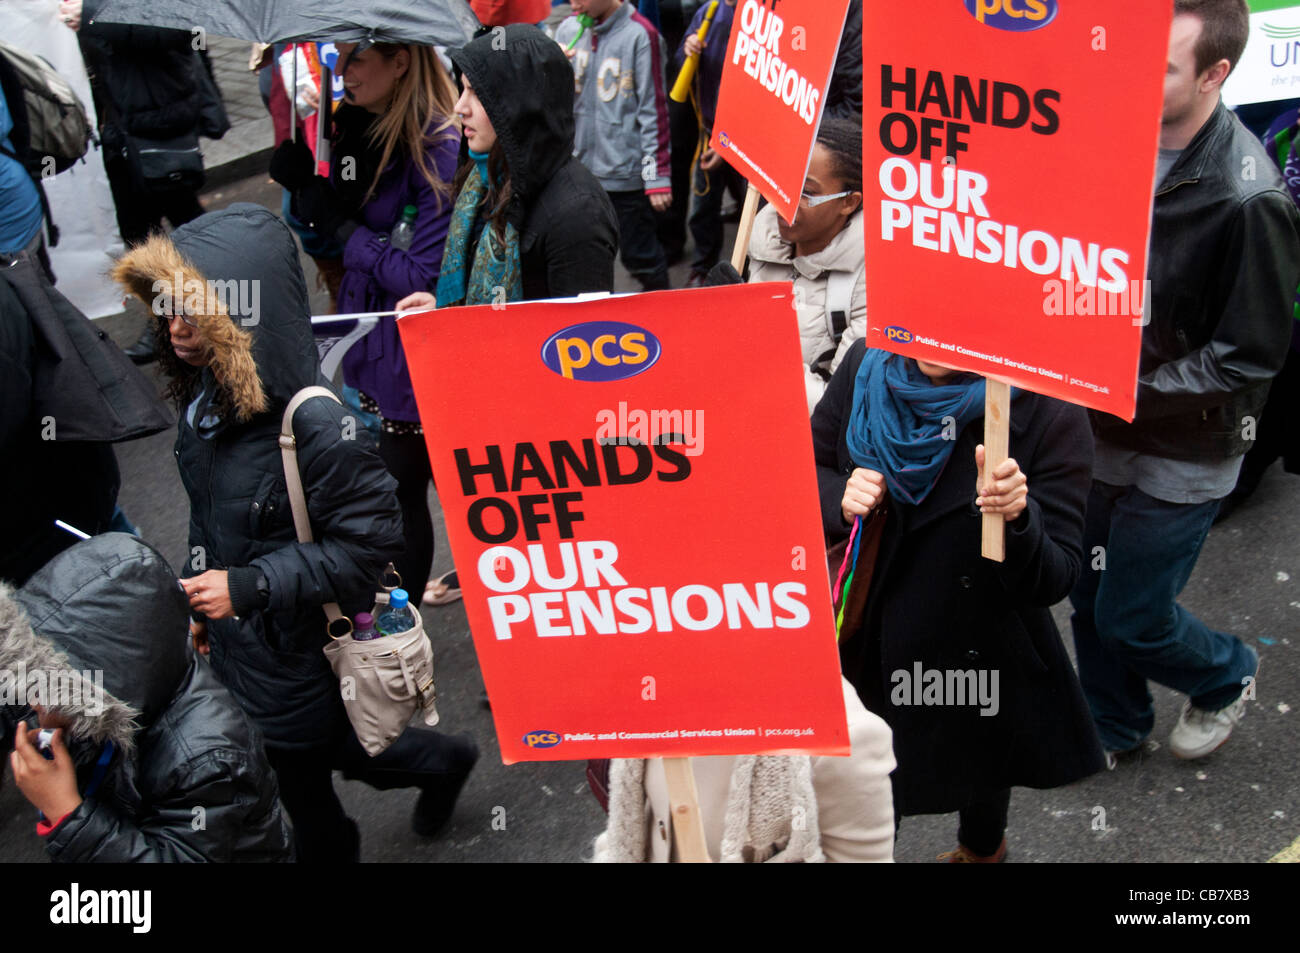 One day strike against pension cuts by public sector workers.PCS union members march in the demonstration with flags. - Stock Image